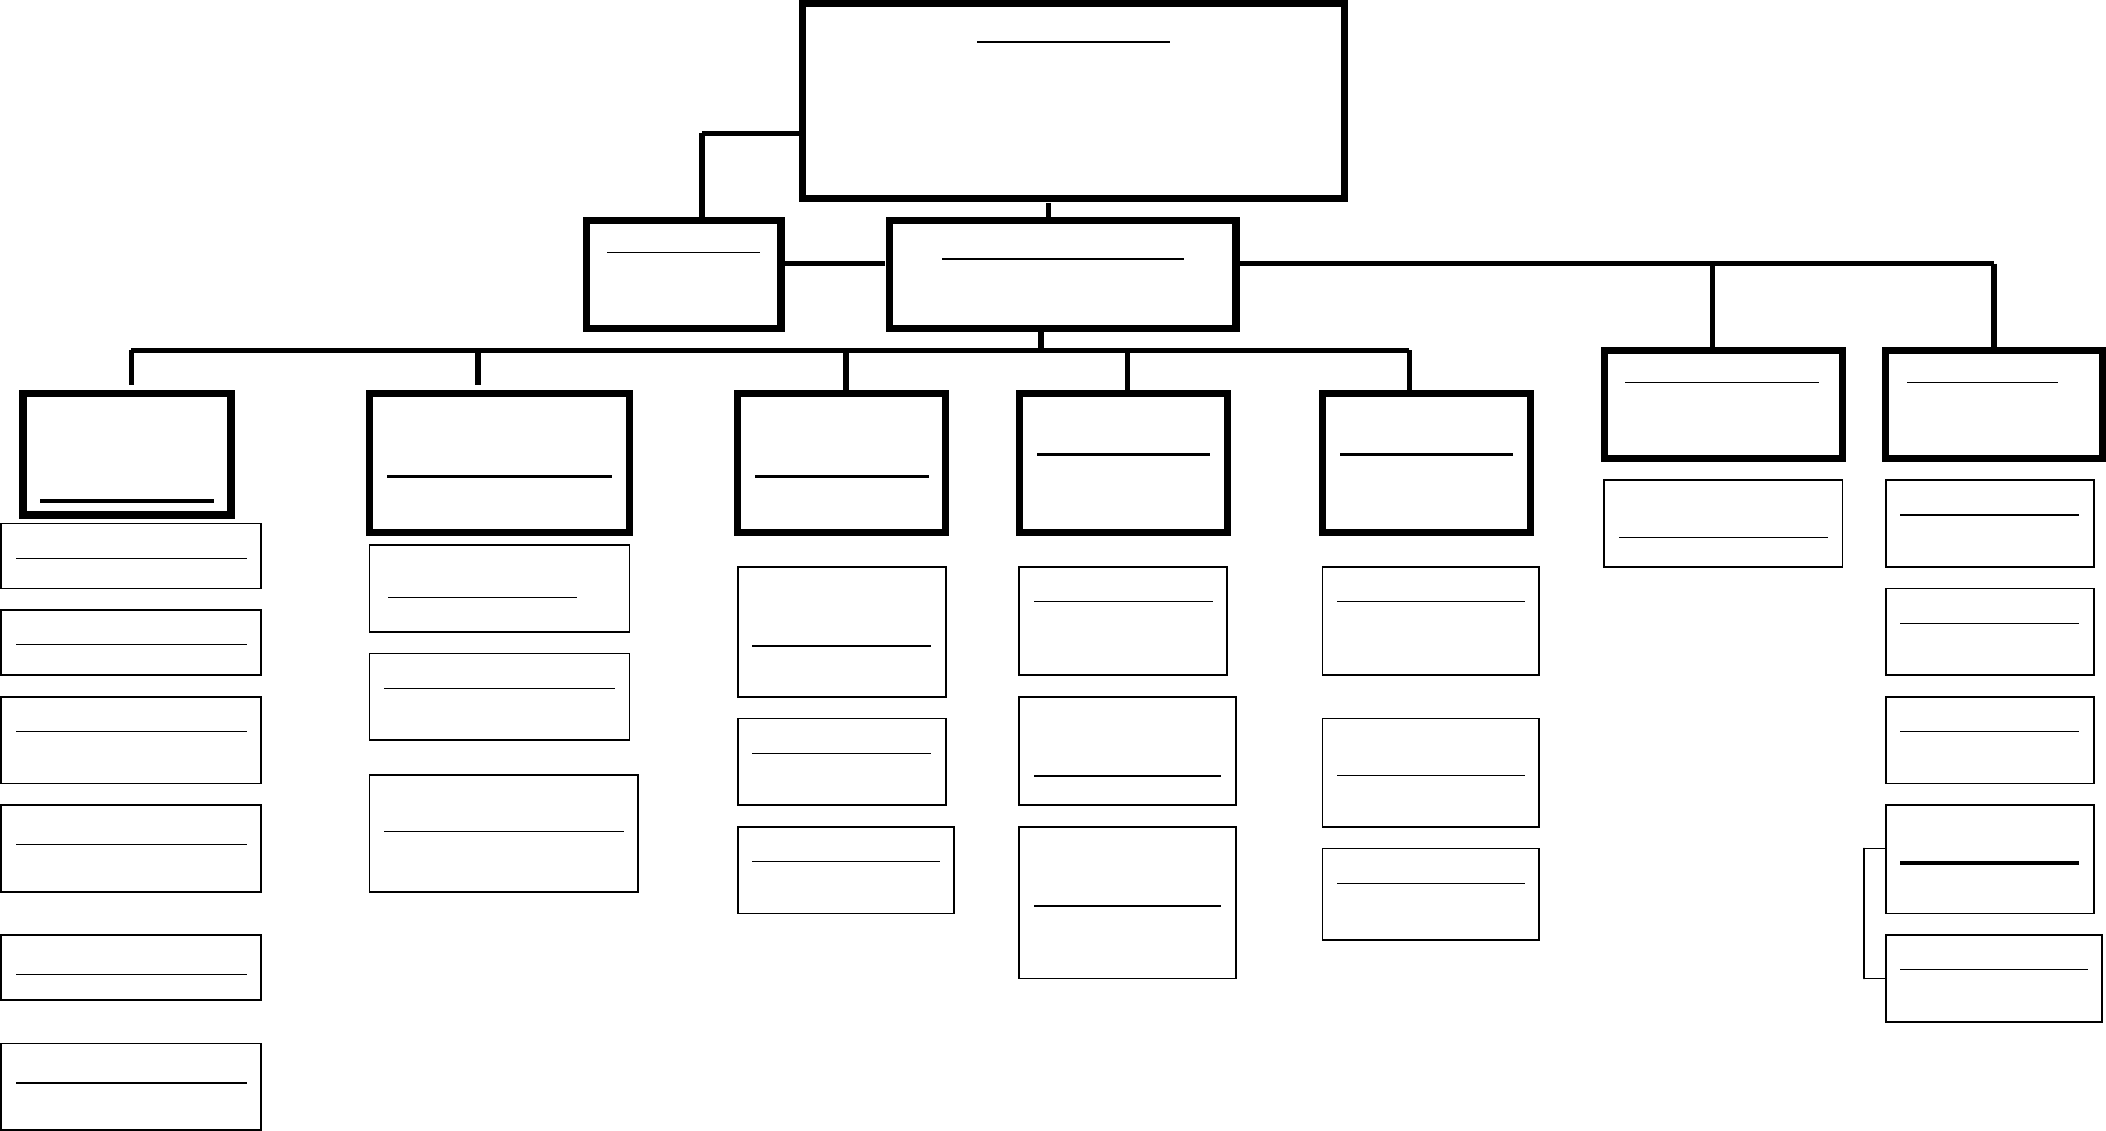 Blank Organizational Chart Cumberland College Free Download